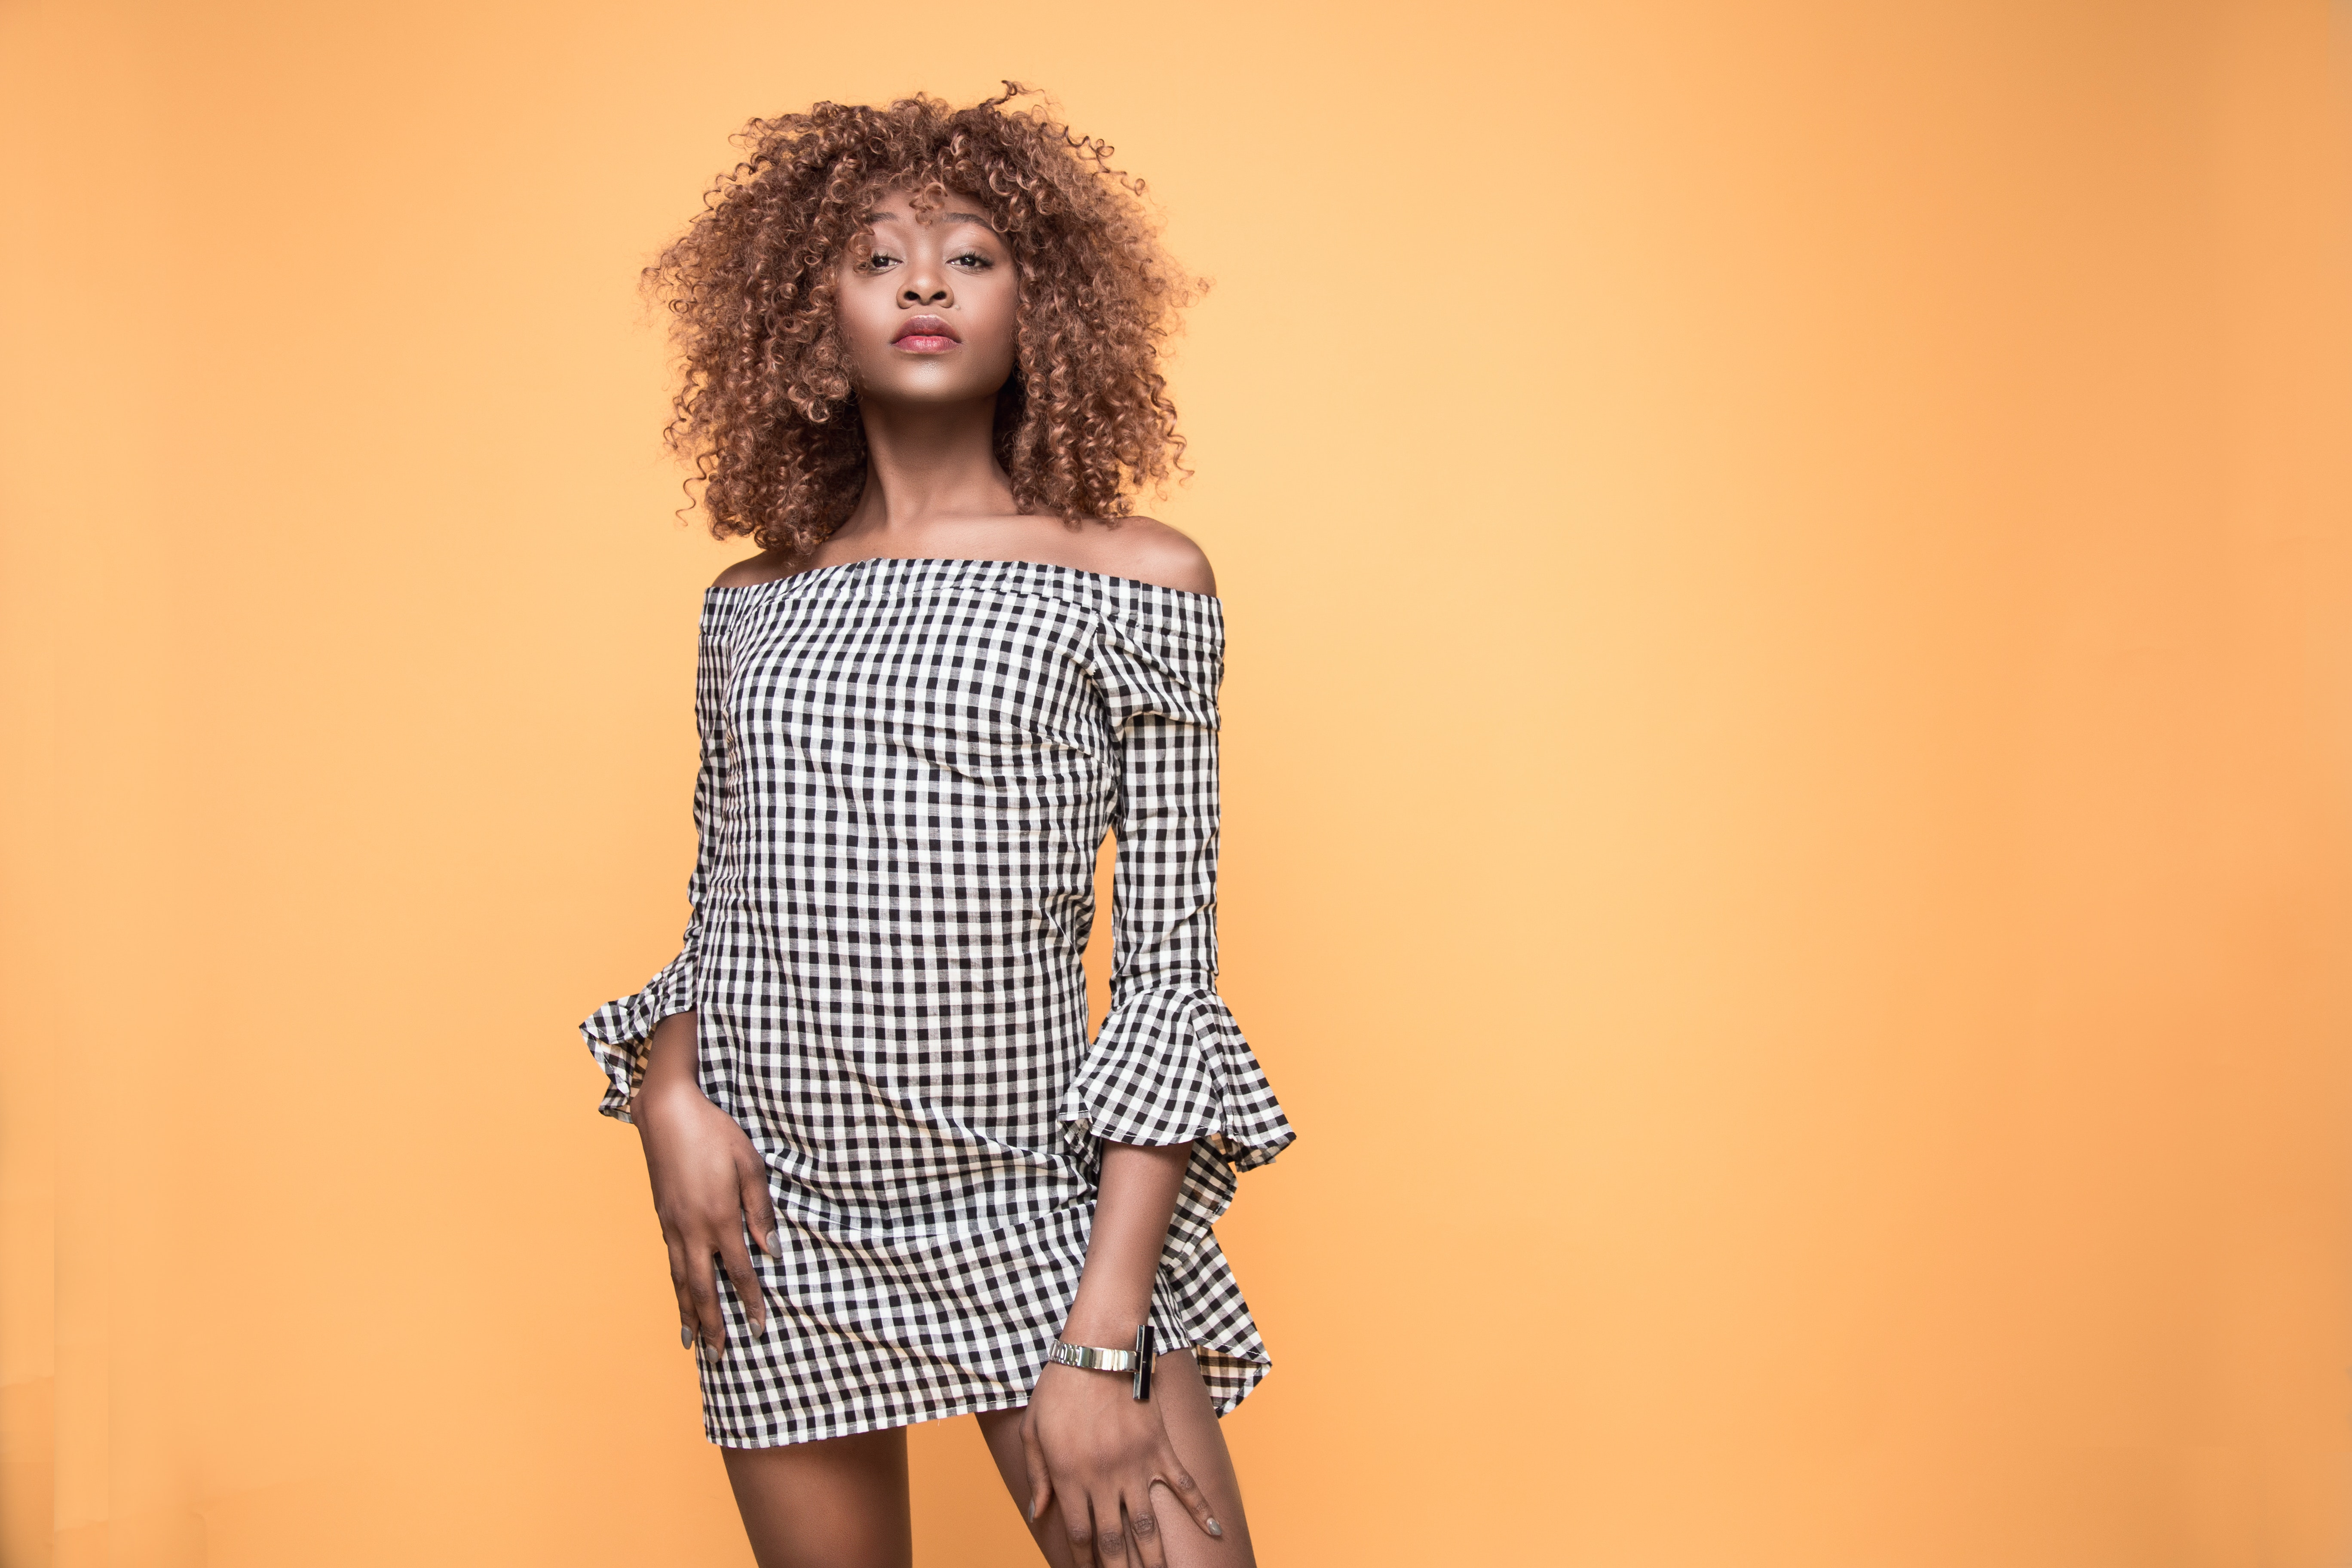 Woman Wearing Checked Bell-sleeved Dress With Orange Background, Casual, Curly hair, Dress, Fashion, HQ Photo